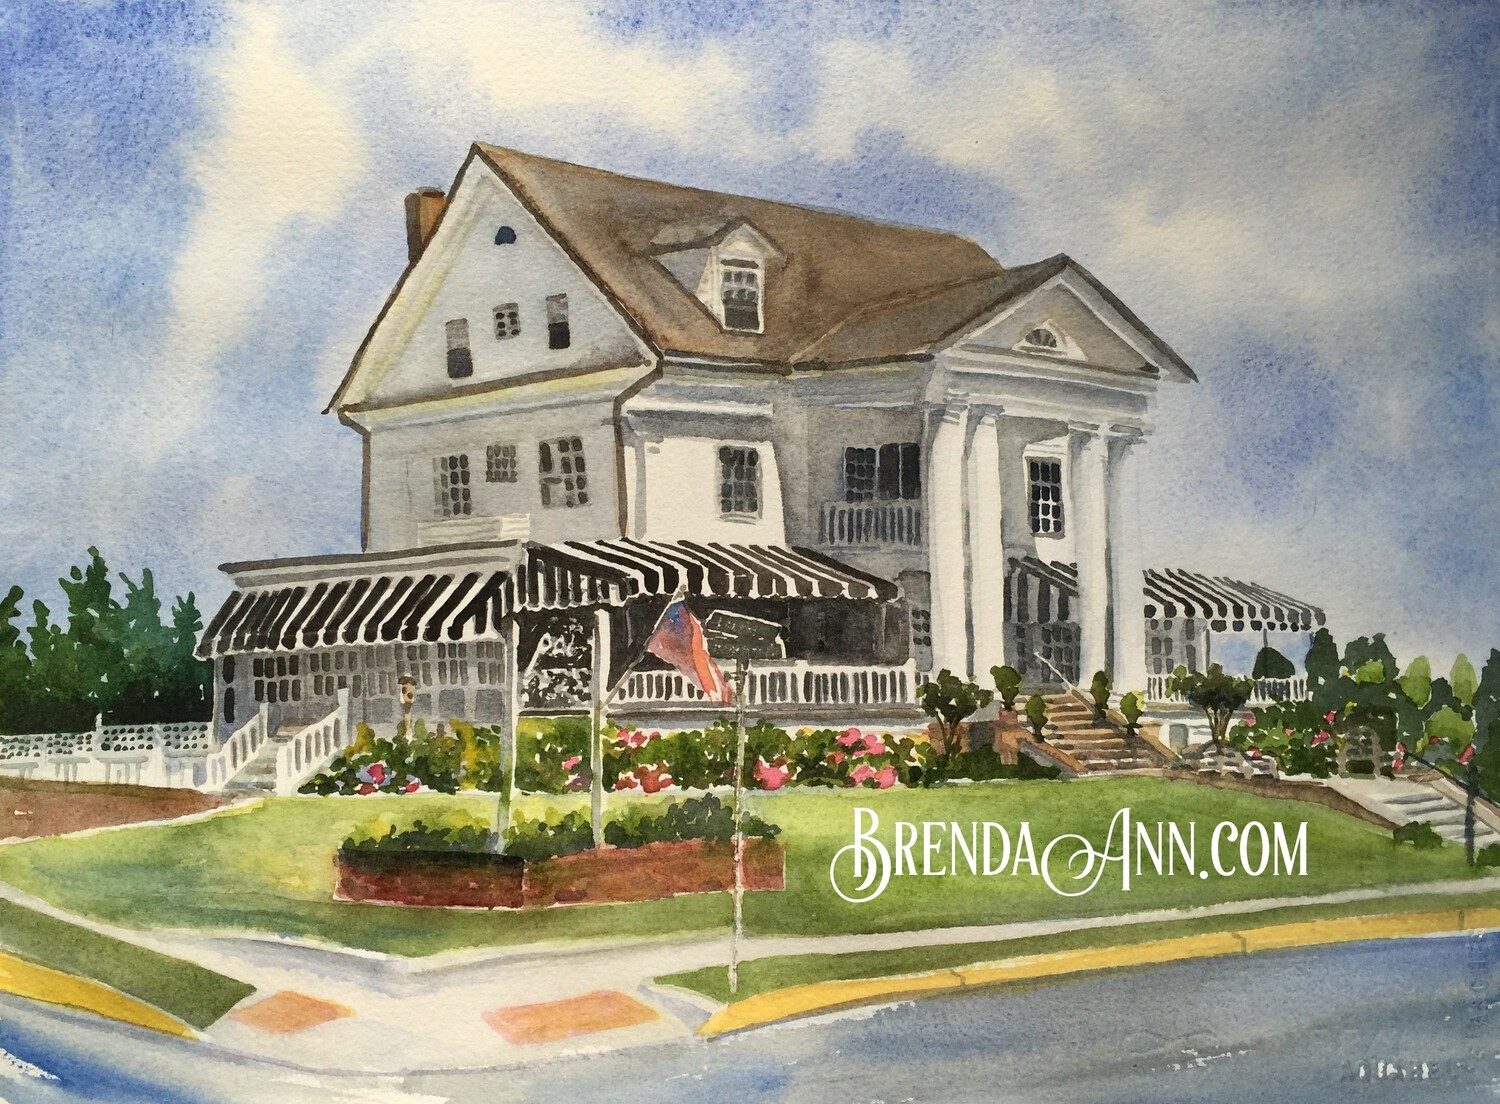 Peter Shields Inn of Cape May - Hand Signed Archival Watercolor Print